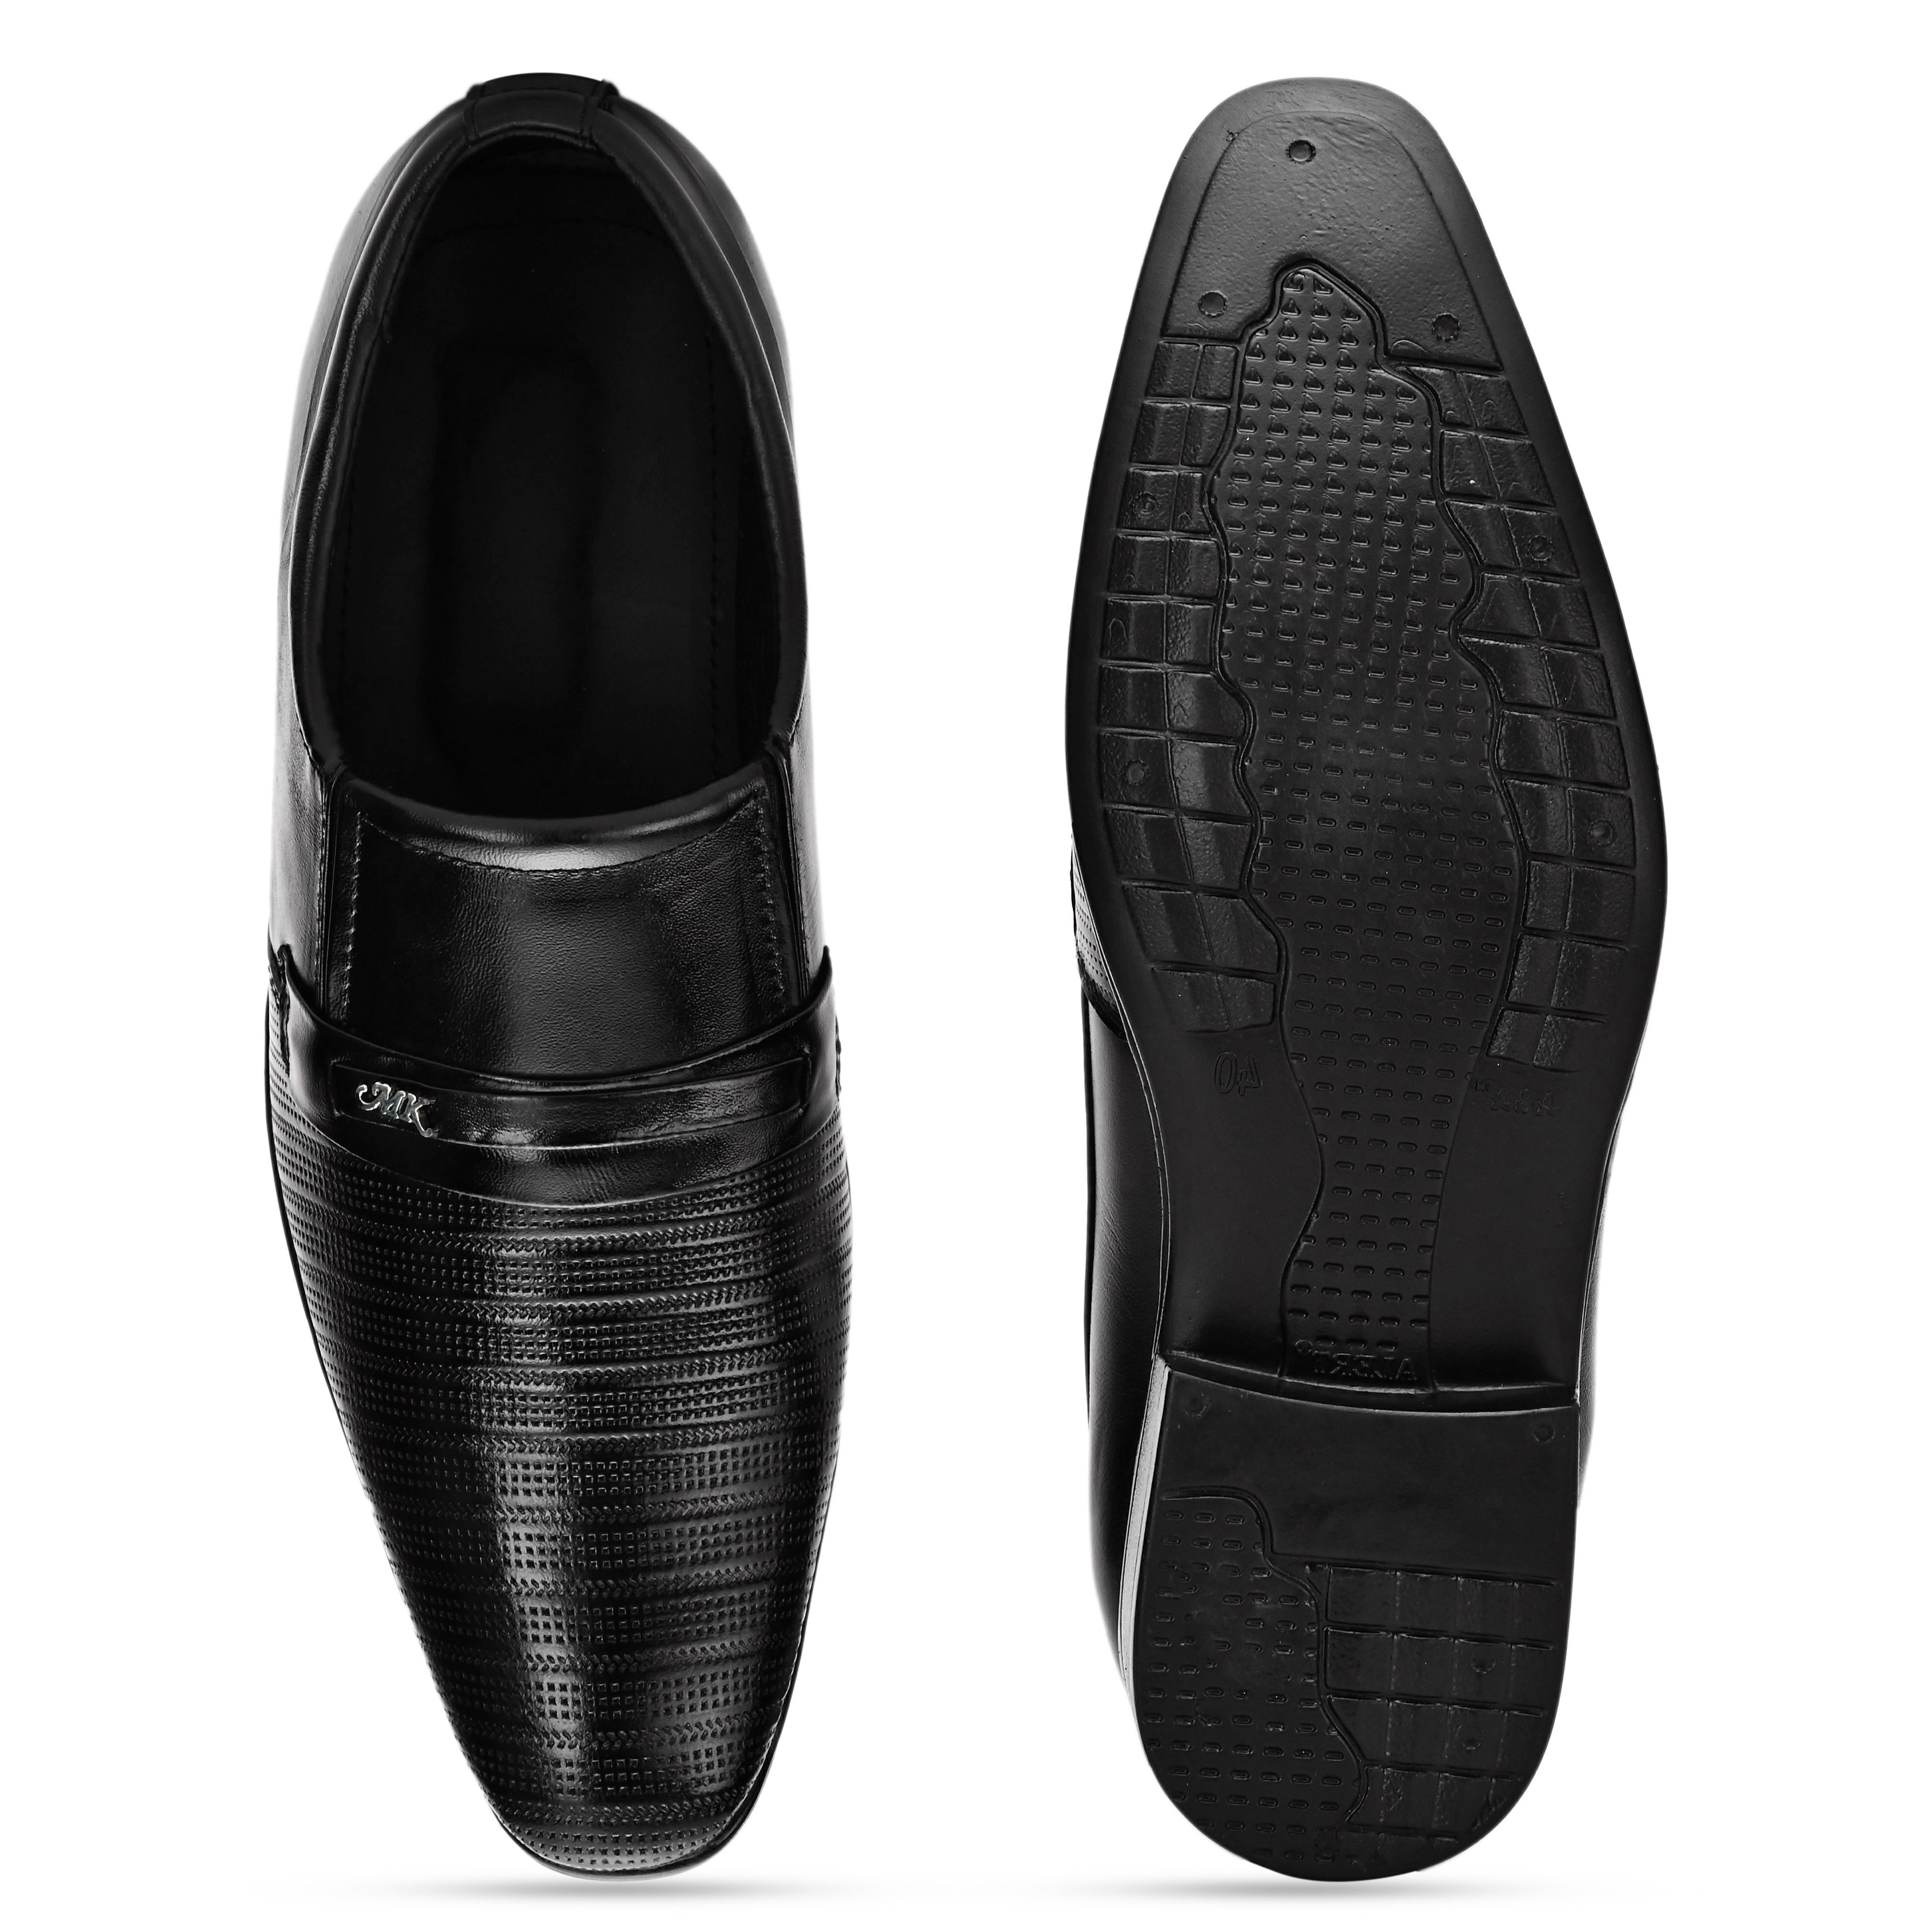 BRIFAR COMFORTABLE & TRENDY GENUINE LEATHER FORMAL SHOES ARE RELIABLE FOR ANY BFF0804BLK (6-9, BLACK, 4 PAIR)